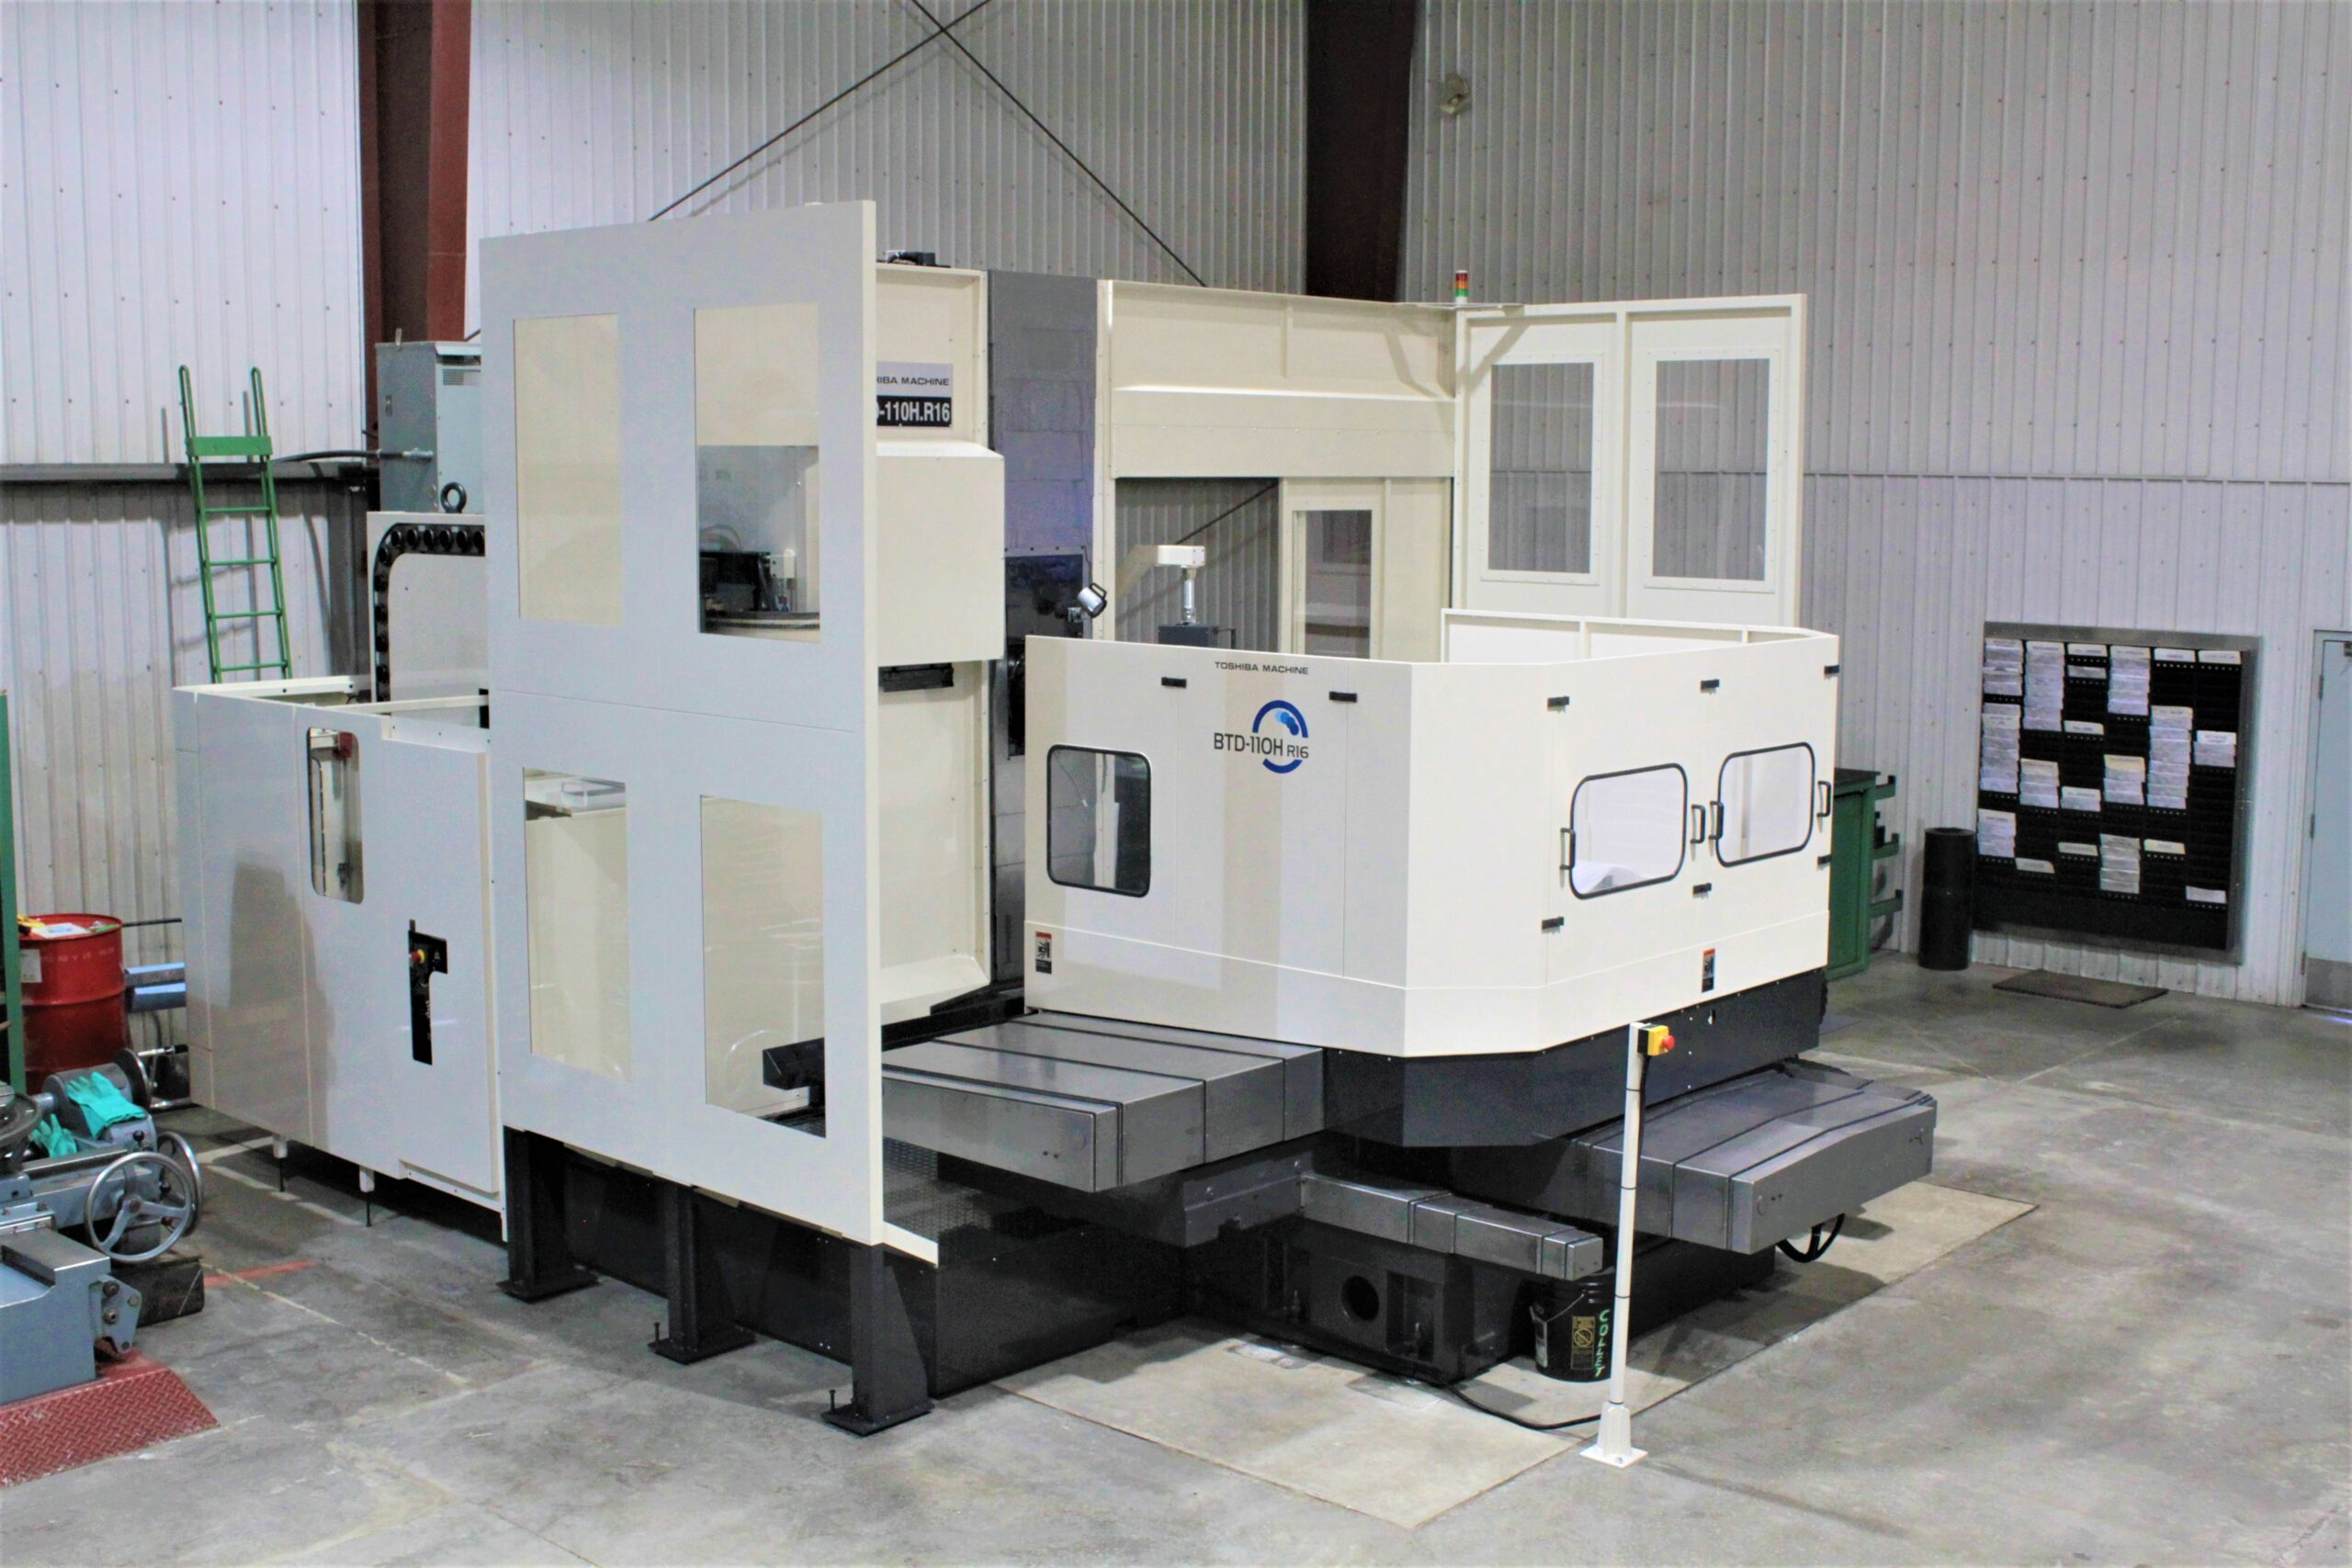 Croatia Industries: Customized manufacturing when you need it most